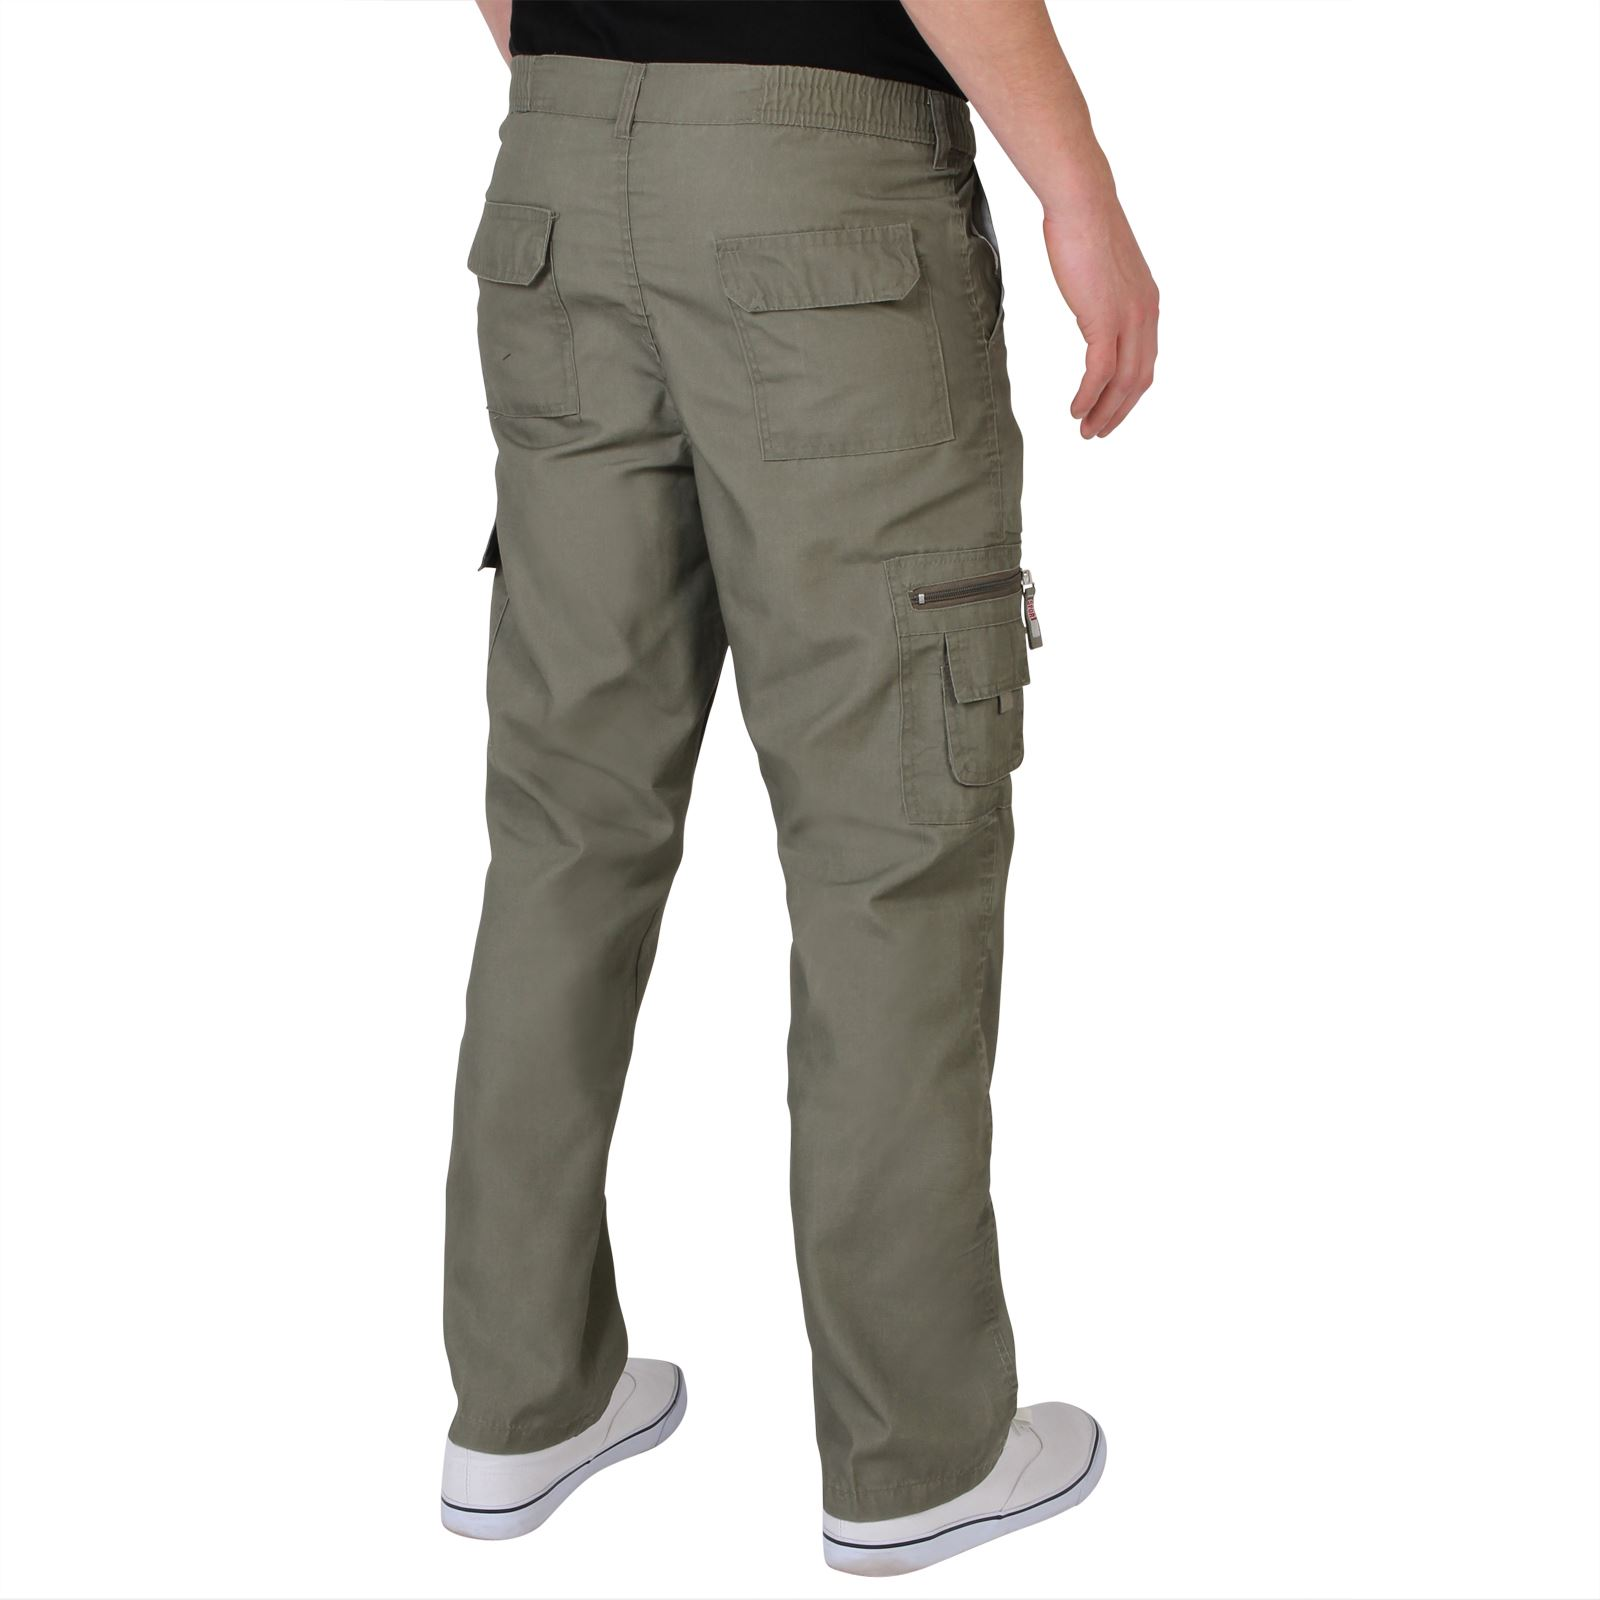 This look is easy to rock with dress pants, but also works with any white pants, including drawstring pants. Try styles by Dockers, American Rag, Denim & Supply Ralph Lauren and G-Star. Shop men's cargo pants from your favorite brands at Macy's.